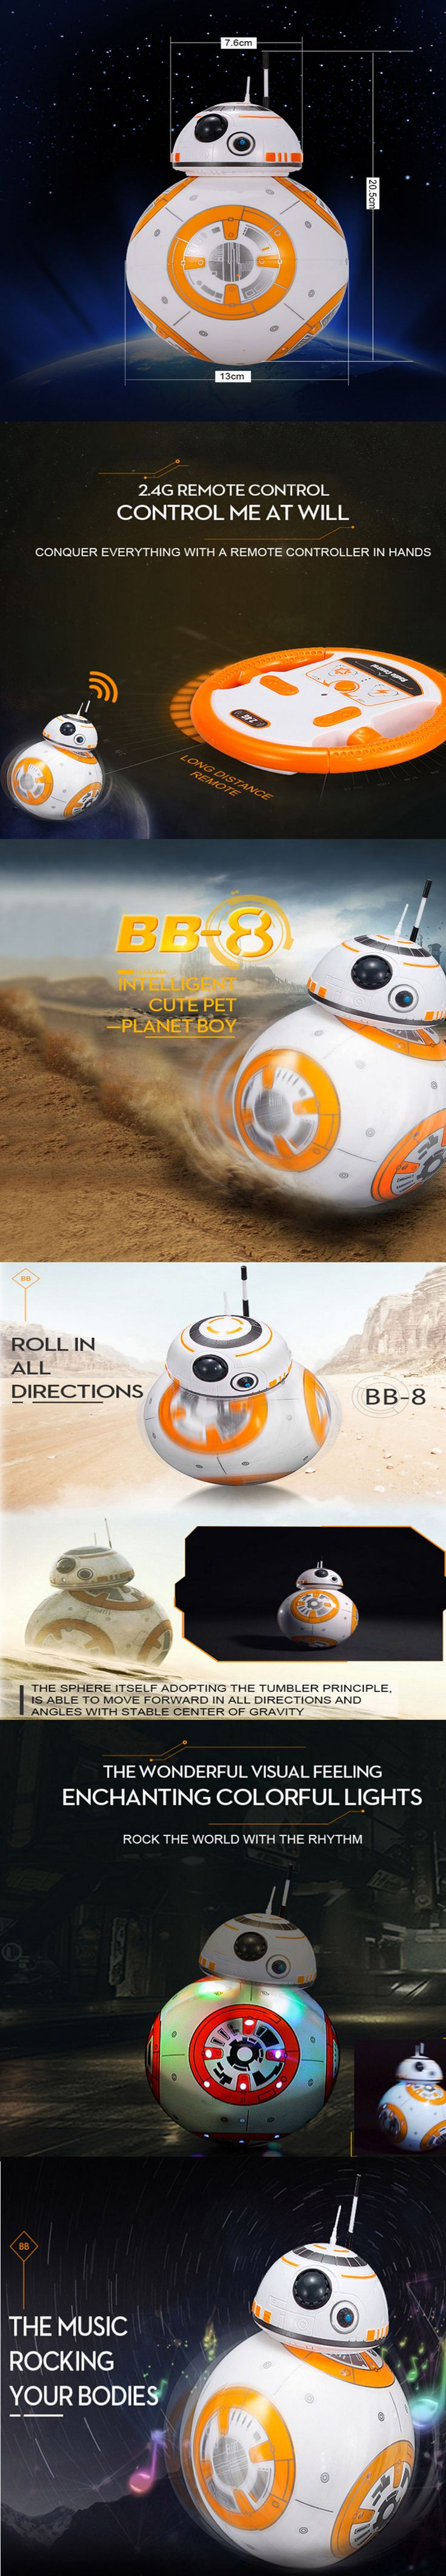 2.4GHz remote control system 360° rotation form Magnetic suspension structure Restore the movie sound effect Cool light effect The head keeps on the above of the big globe  Specifications:  Name: BB-8 Planet Boy Robot Control range: About 5-10m Size : About 20.5 * 13cm Remote controller battery: 2 * AA battery (not included) Body battery: 4 * AA battery (not included) Age level: Above 6 years old Weight: About 481g